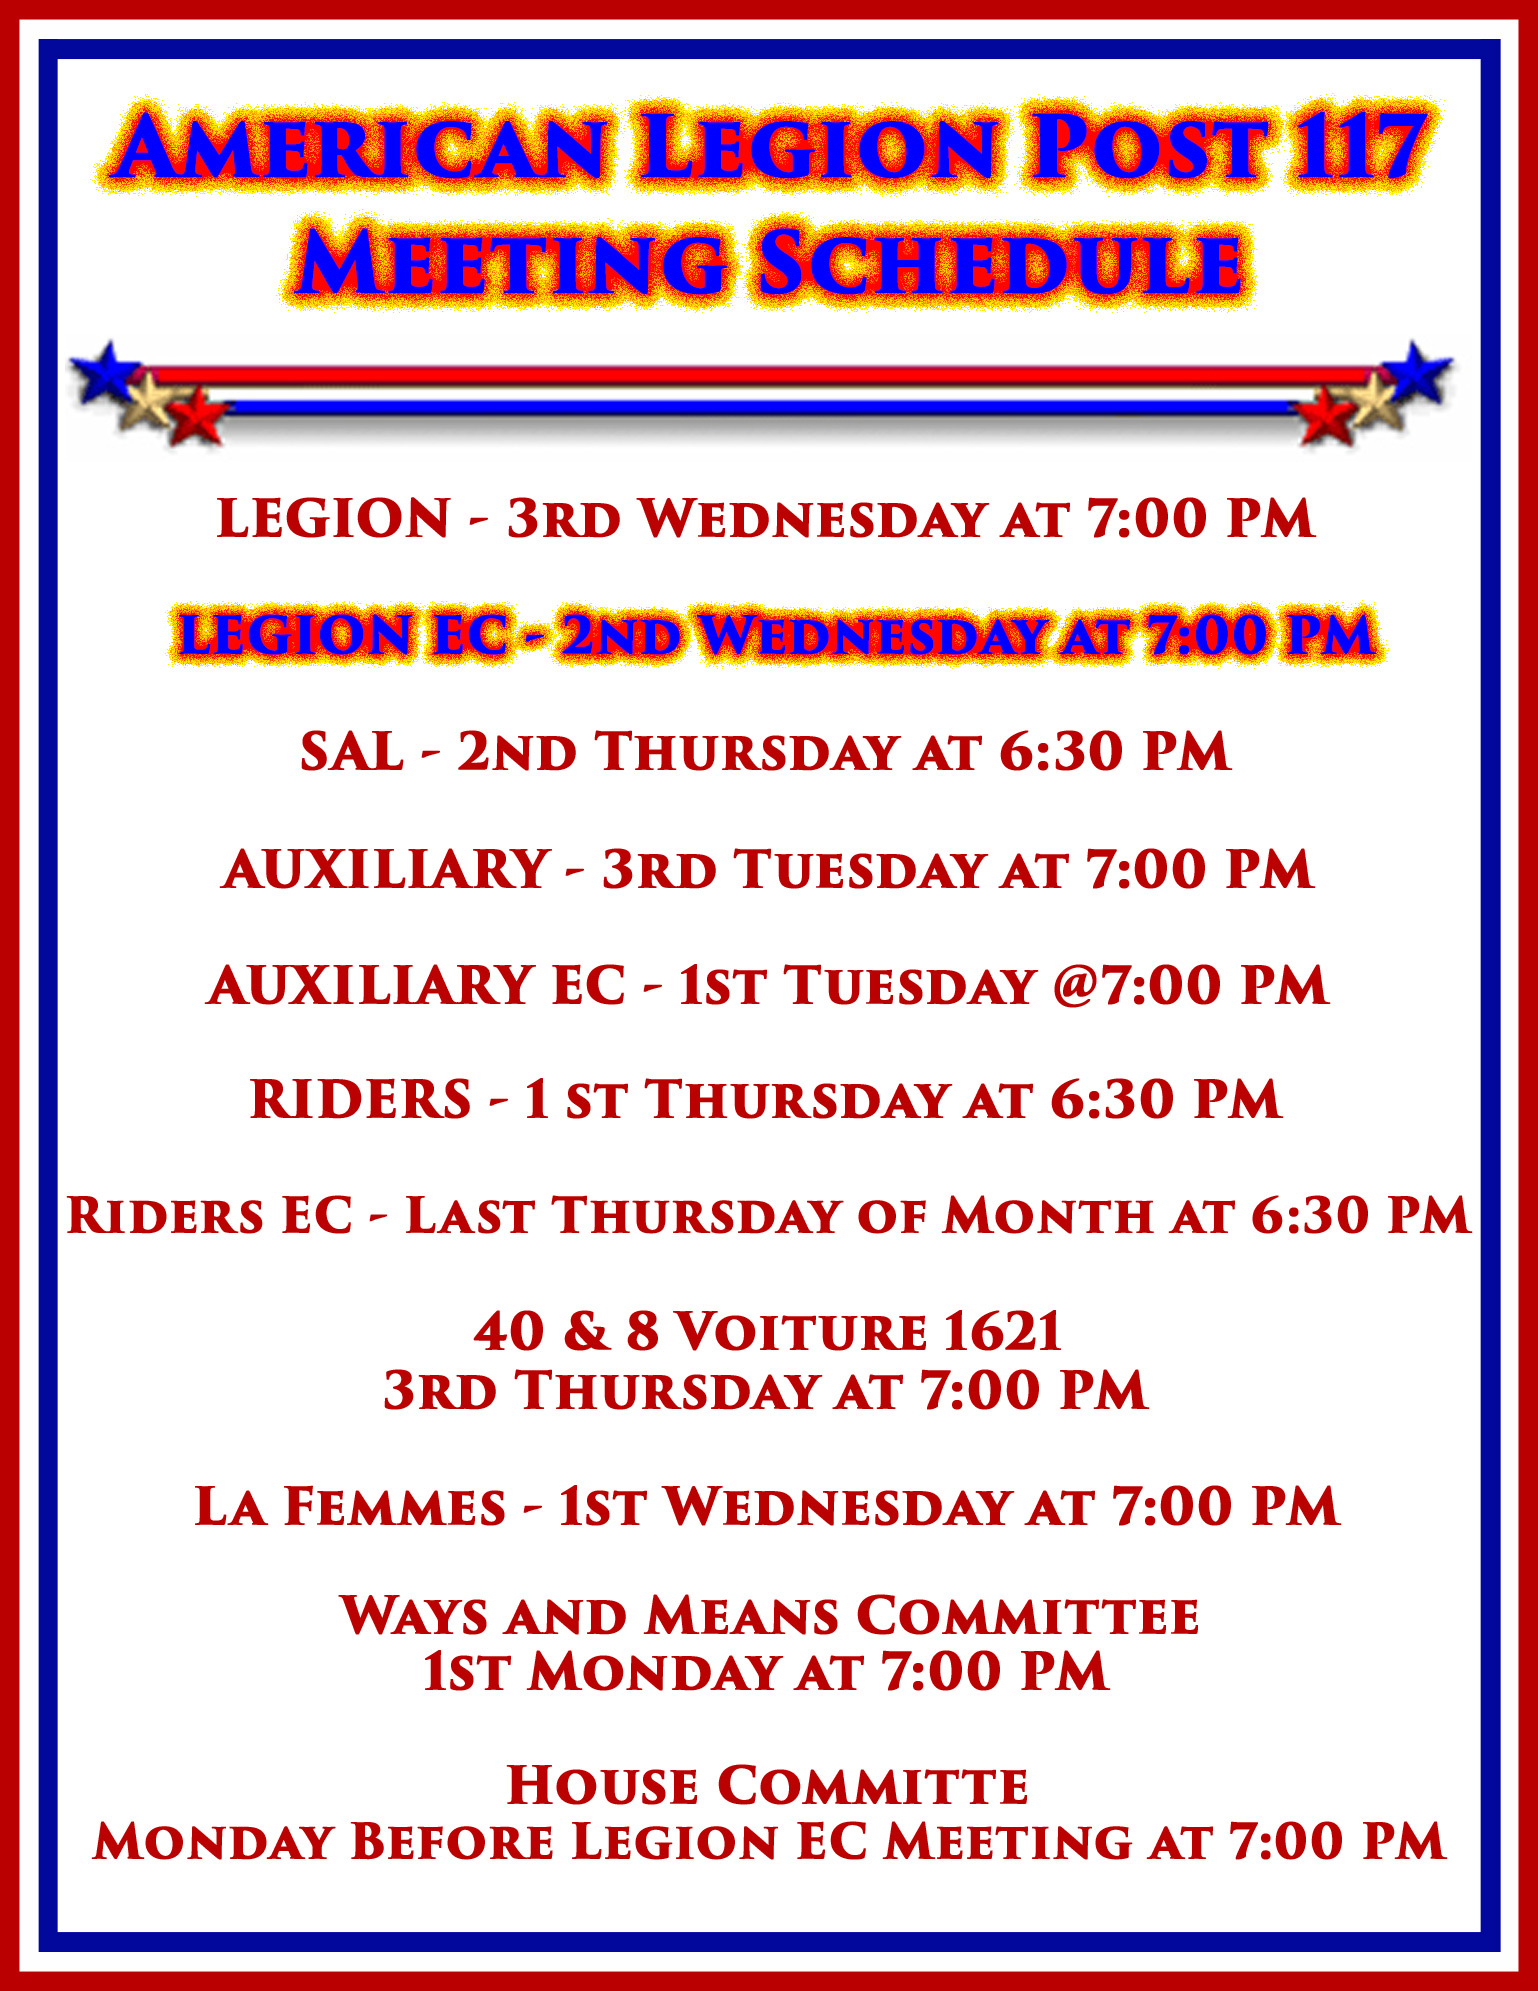 American Legion EC Meeting Schedule